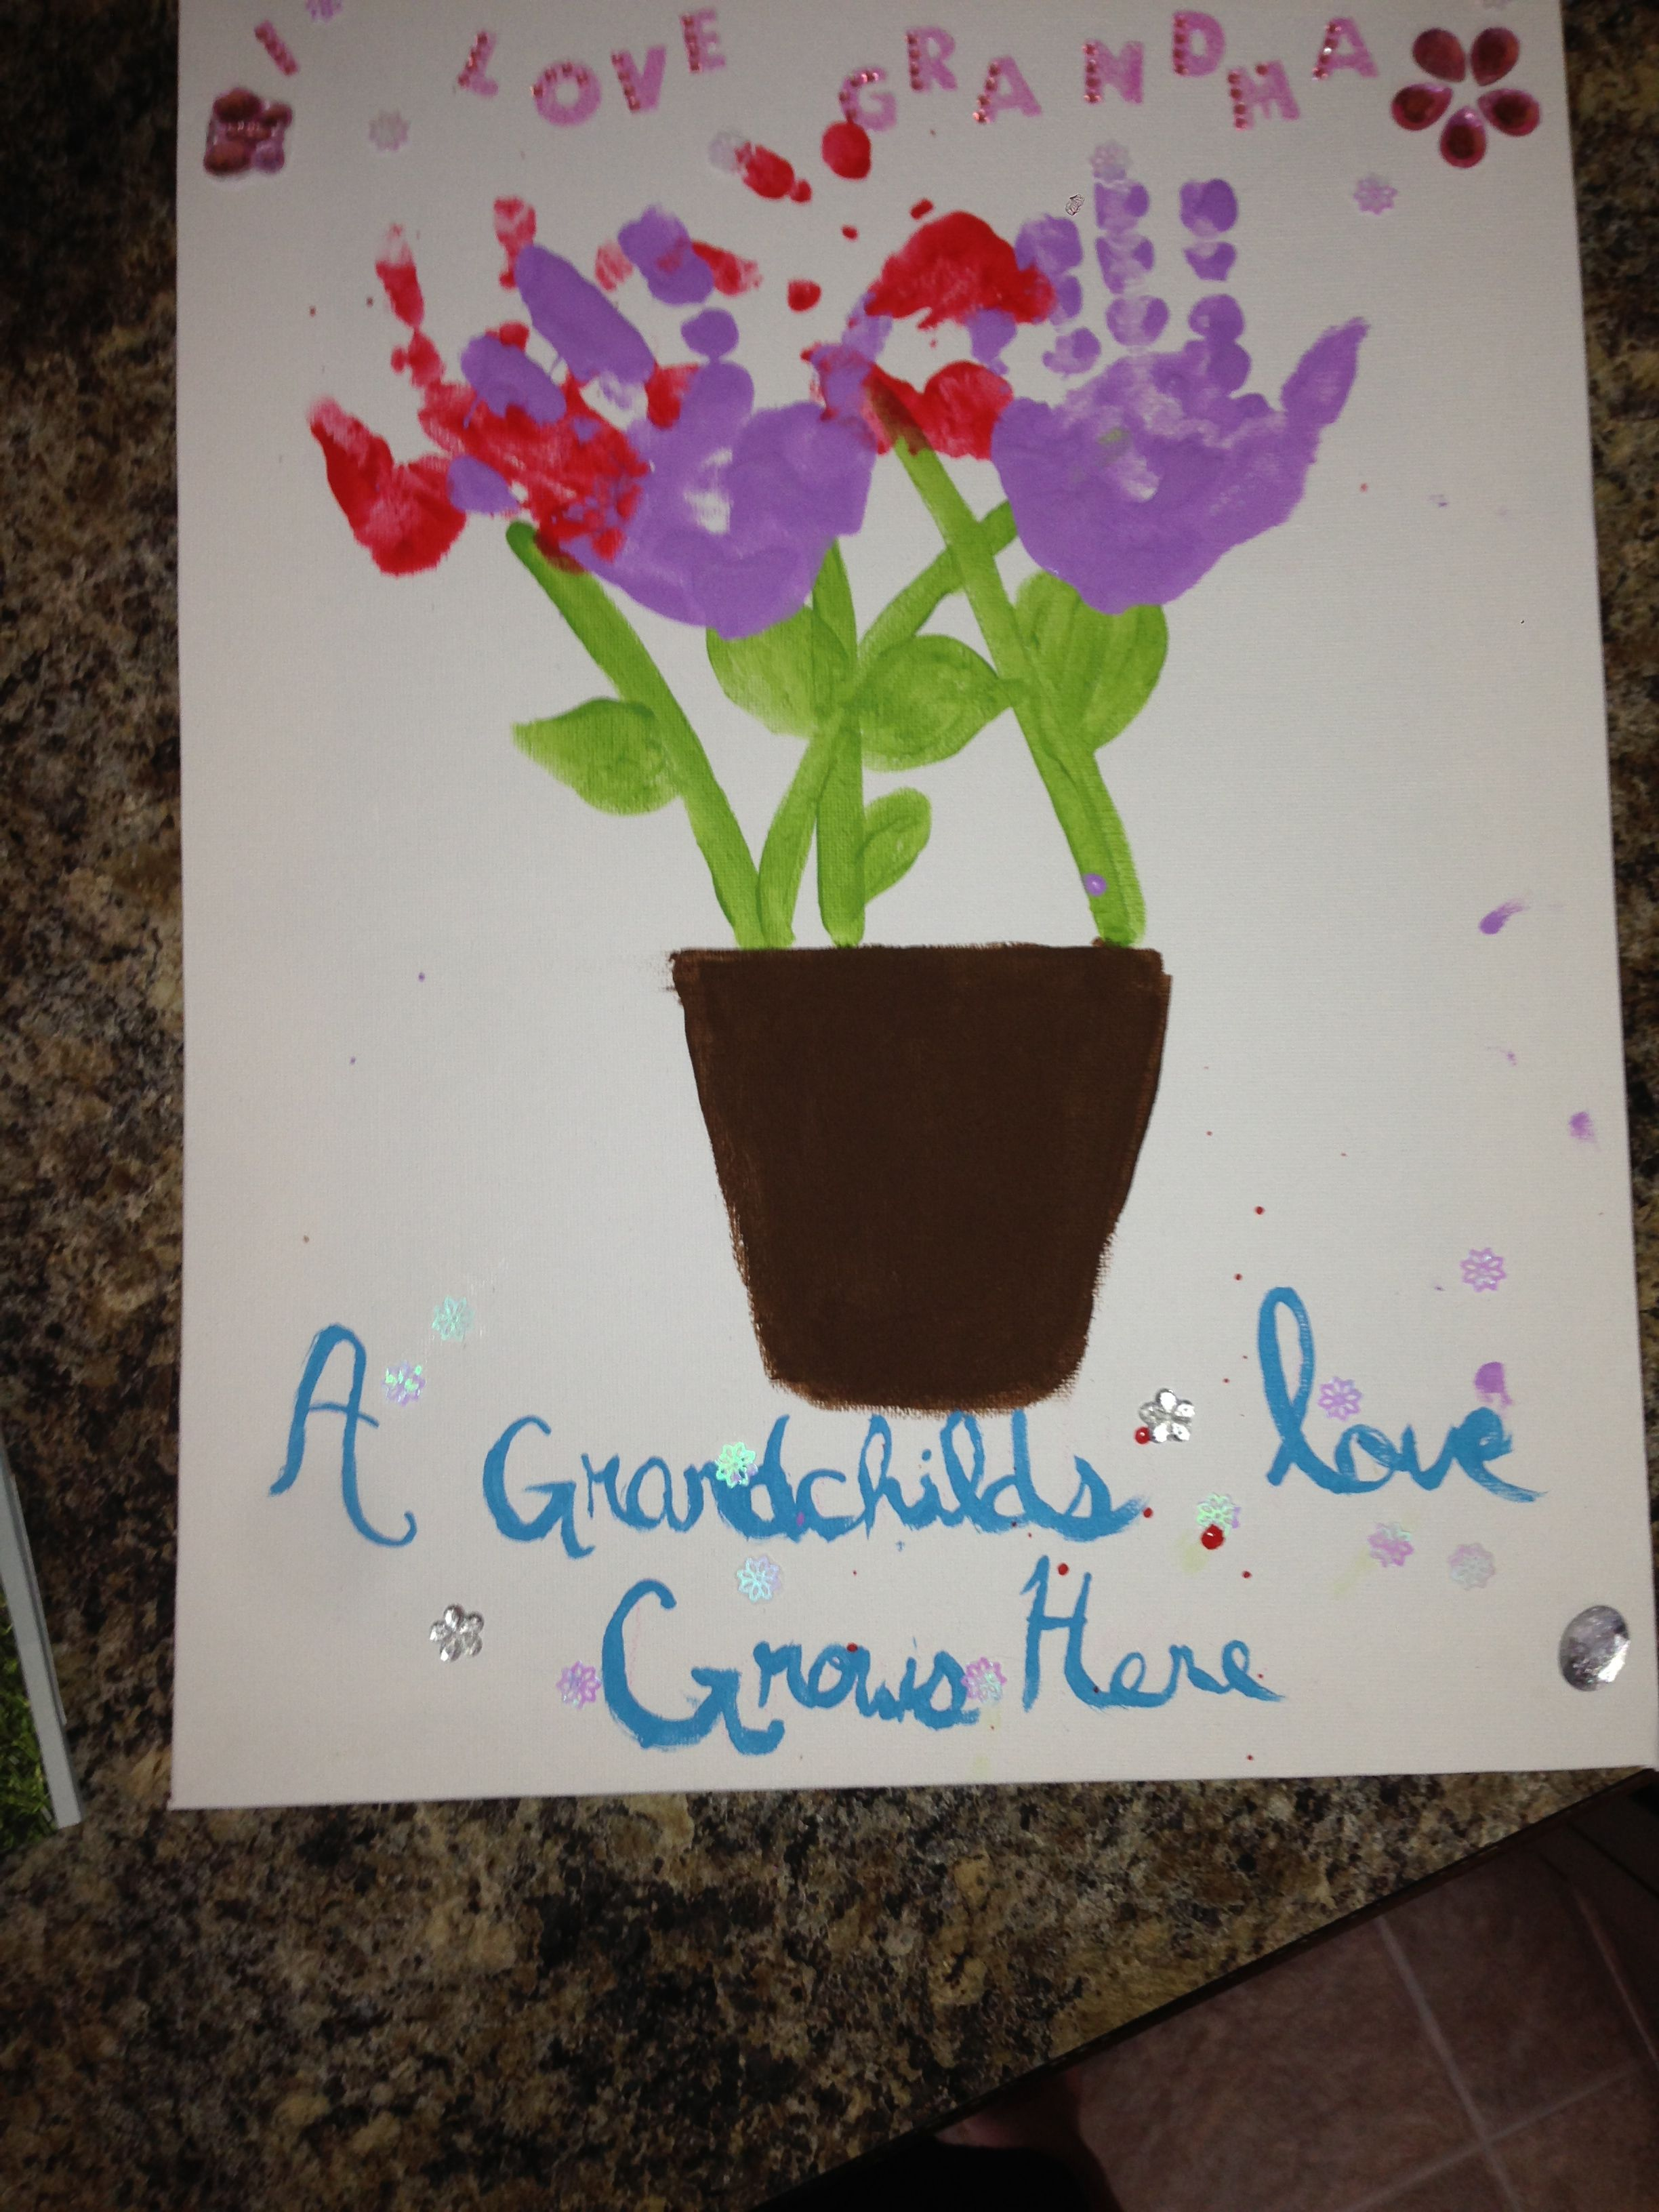 A gift for grandma on her birthday gifts pinterest for Good birthday presents for grandma